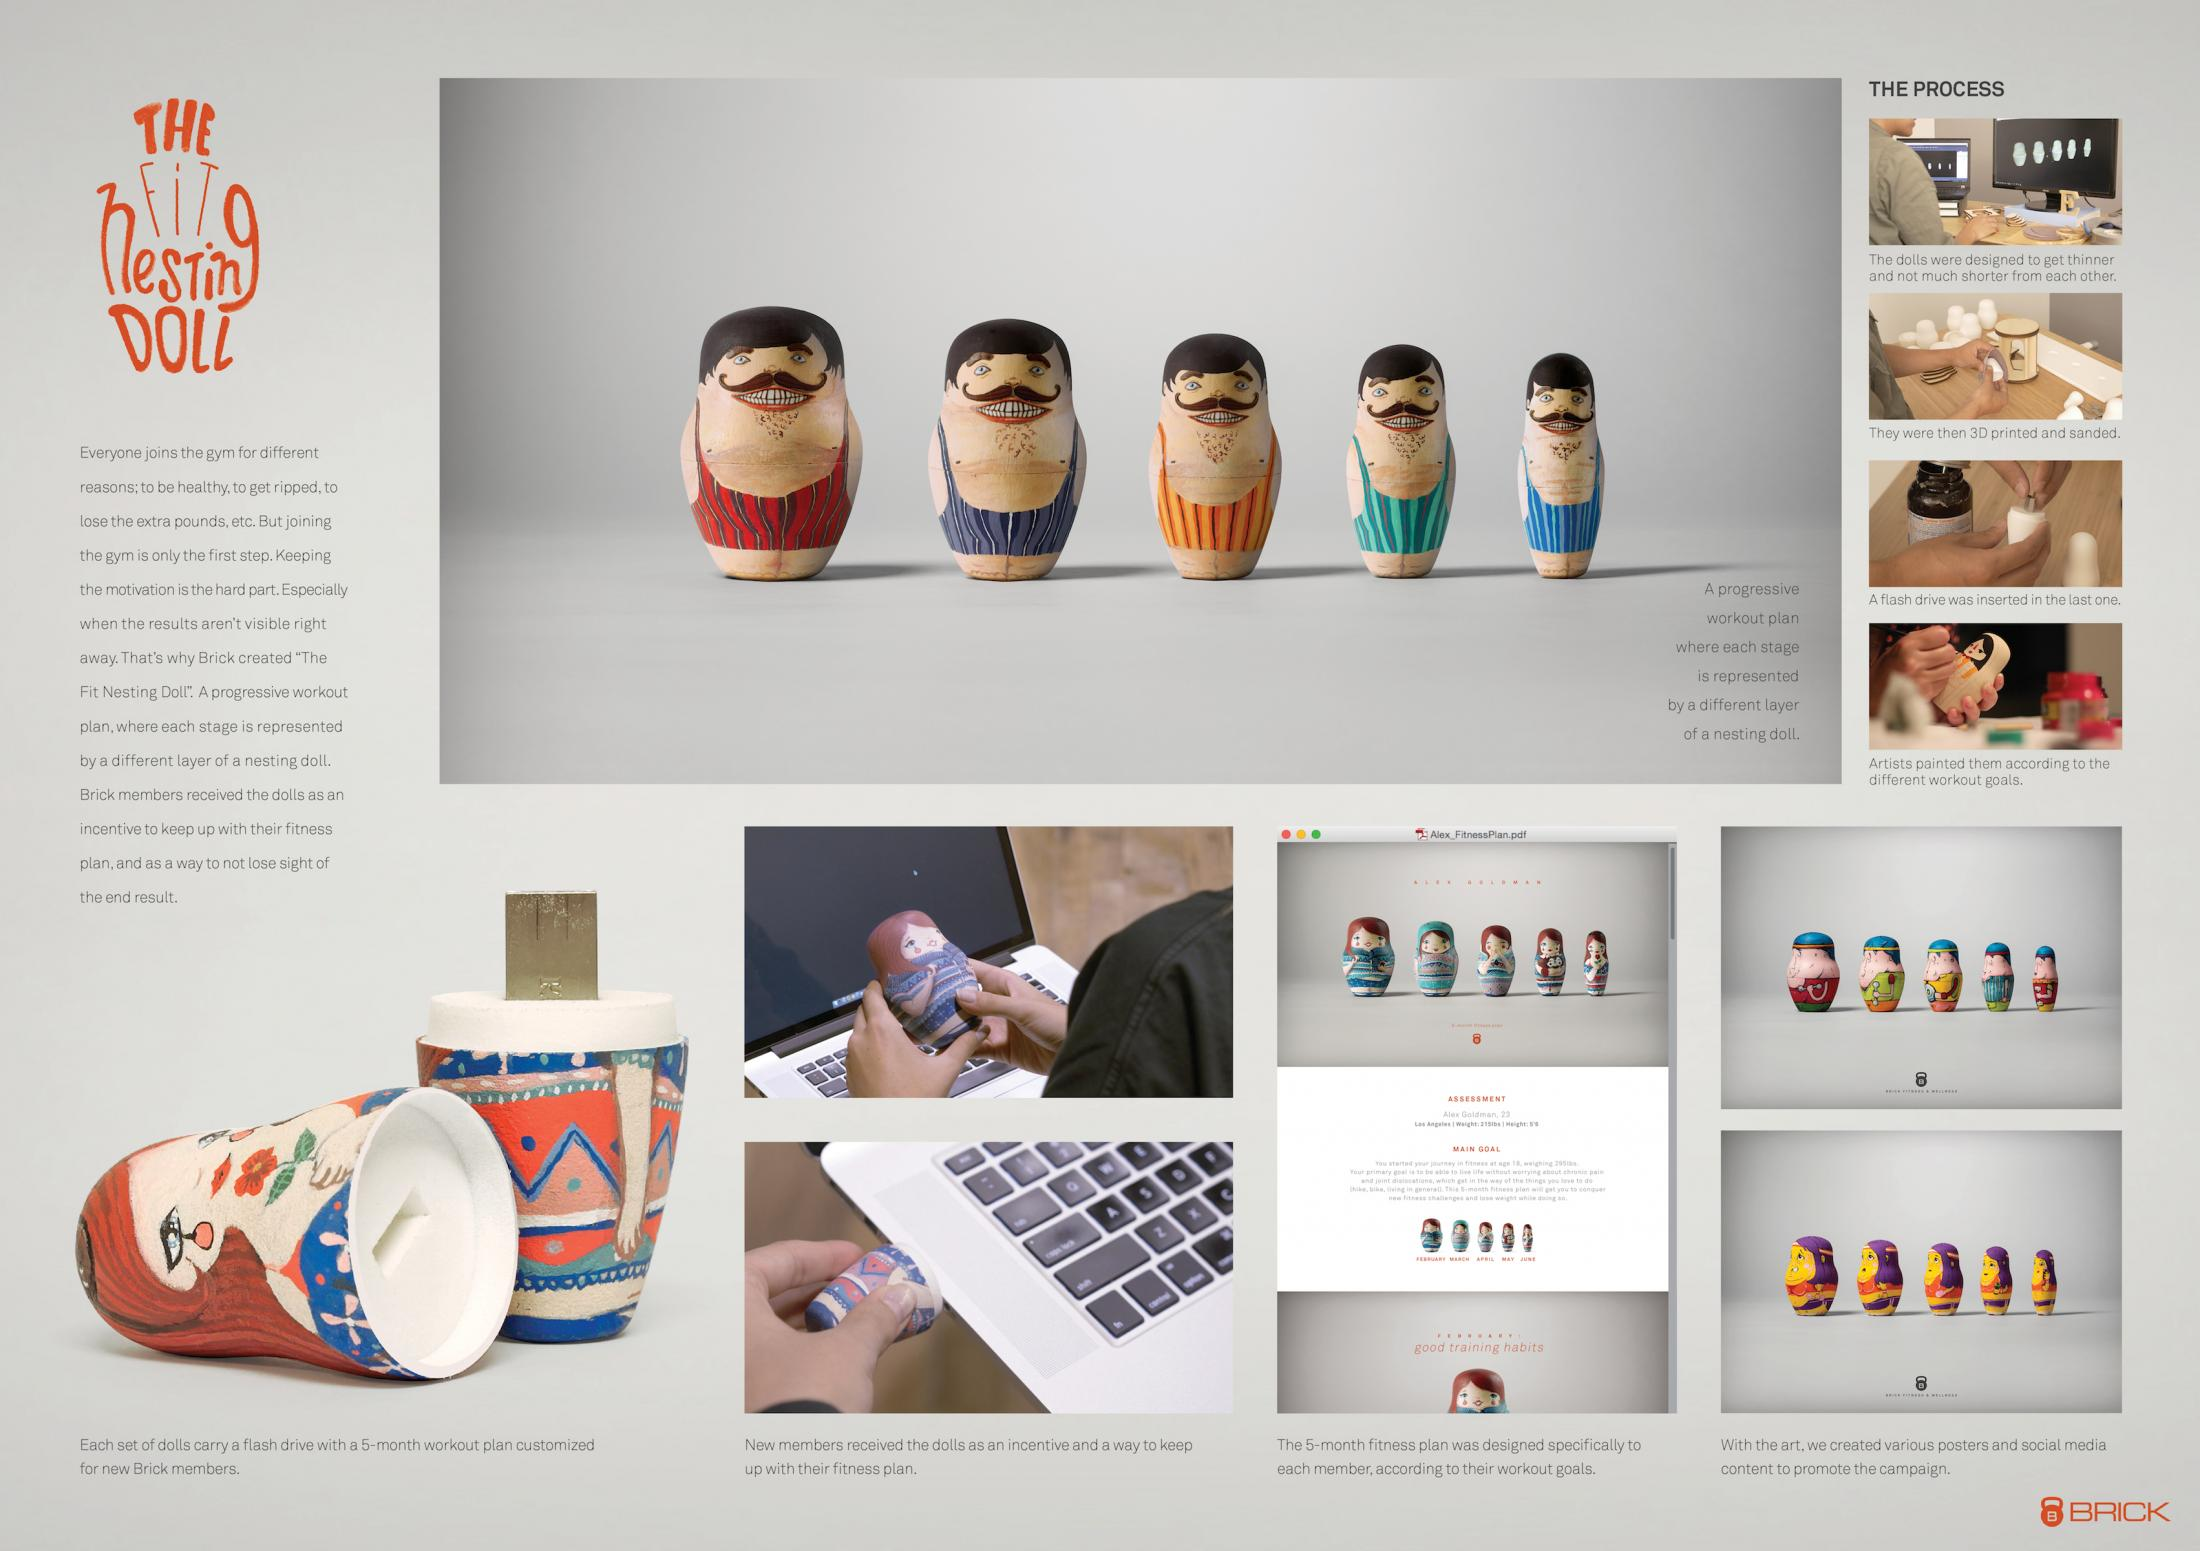 Image Media for The Fit Nesting Doll